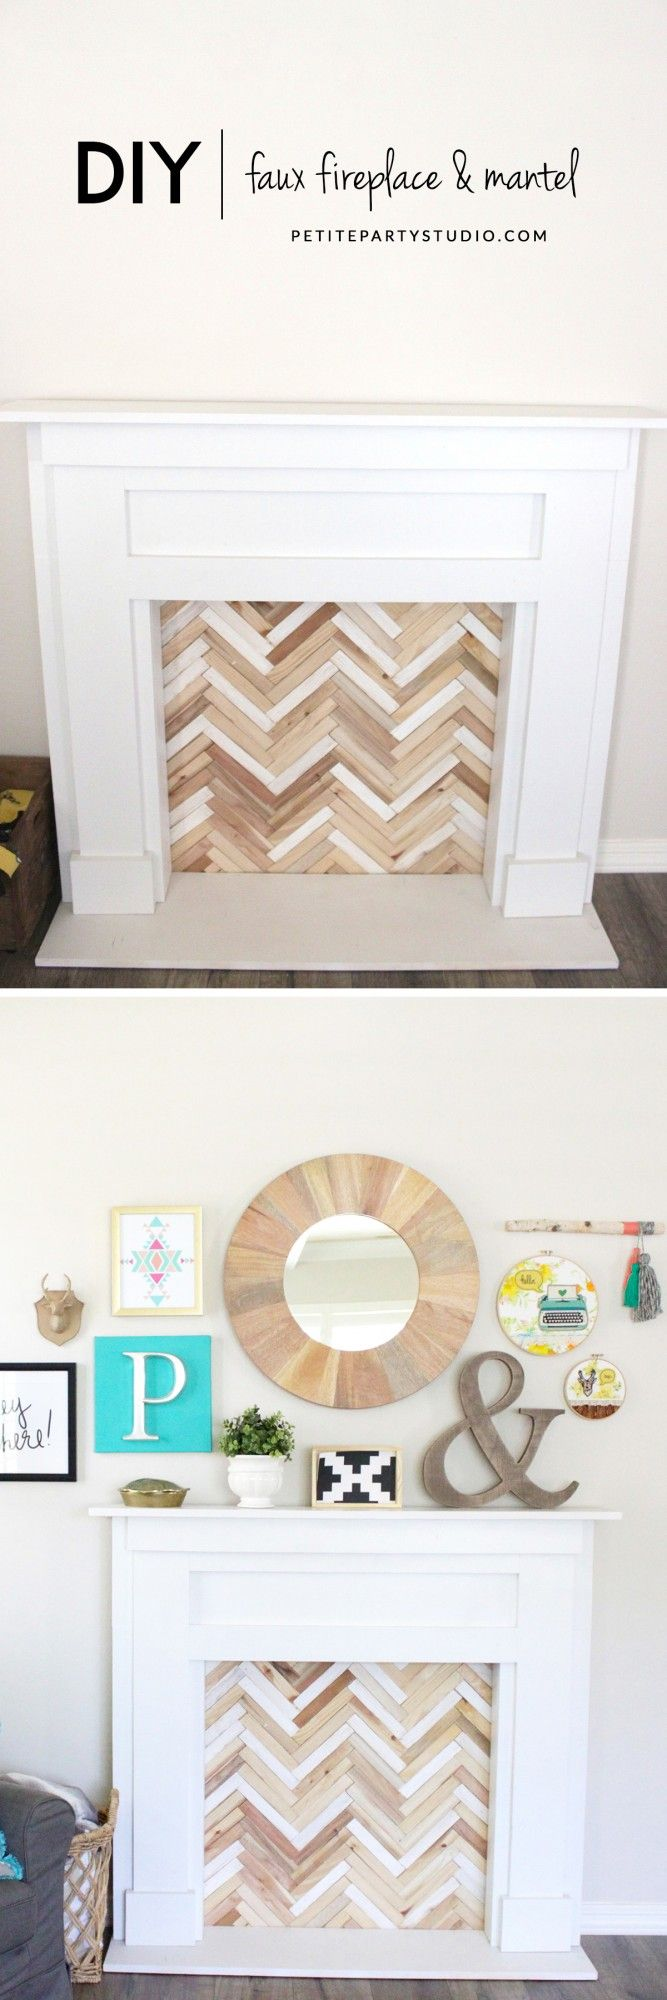 Faux Fireplace & Mantel DIY